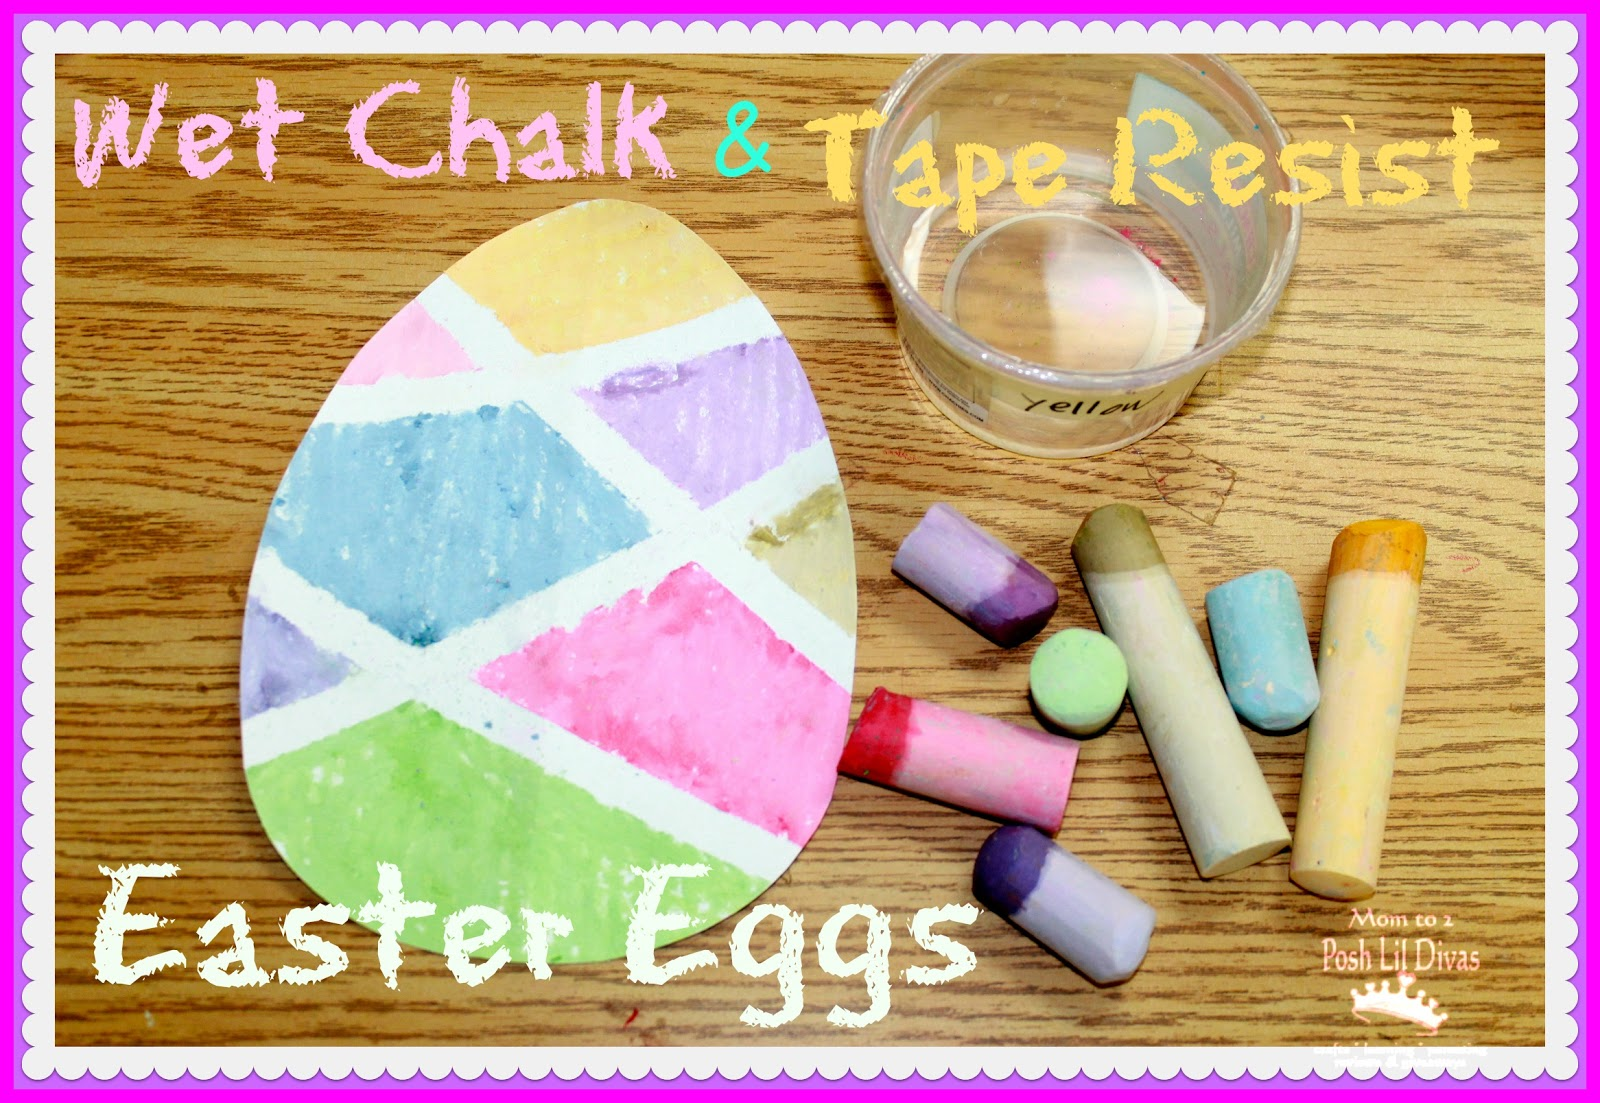 wet chalk tape resist easter egg painting - Pictures Of Easter Eggs 2